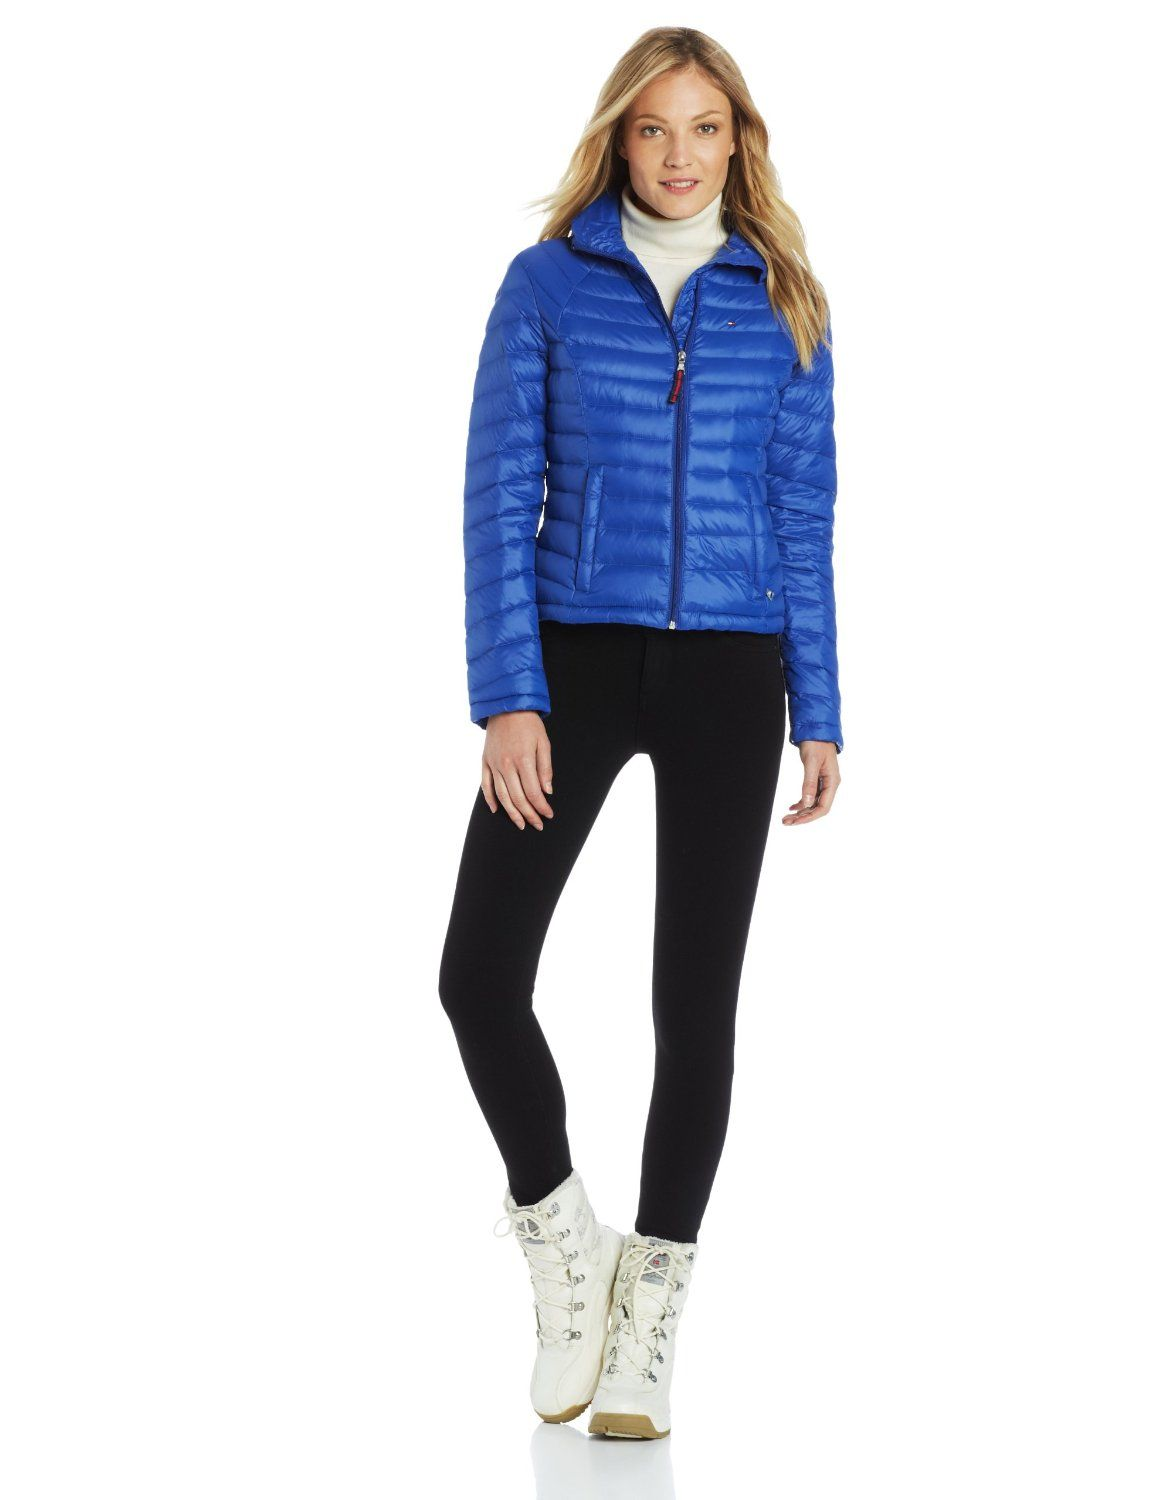 Tommy Hilfiger Women's Packable Down Jacket with Wave